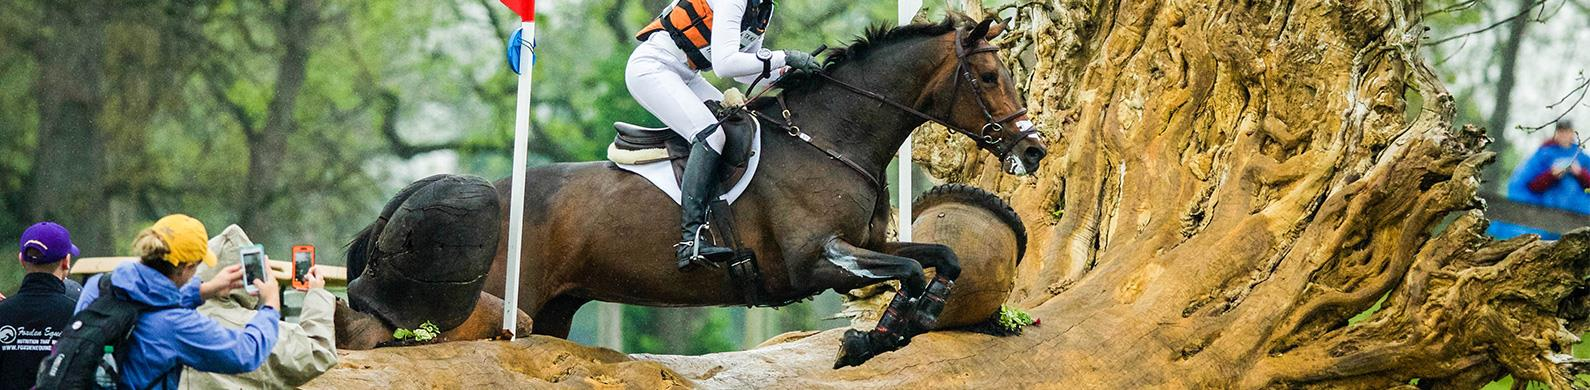 Usef Network Live Coverage Rolex